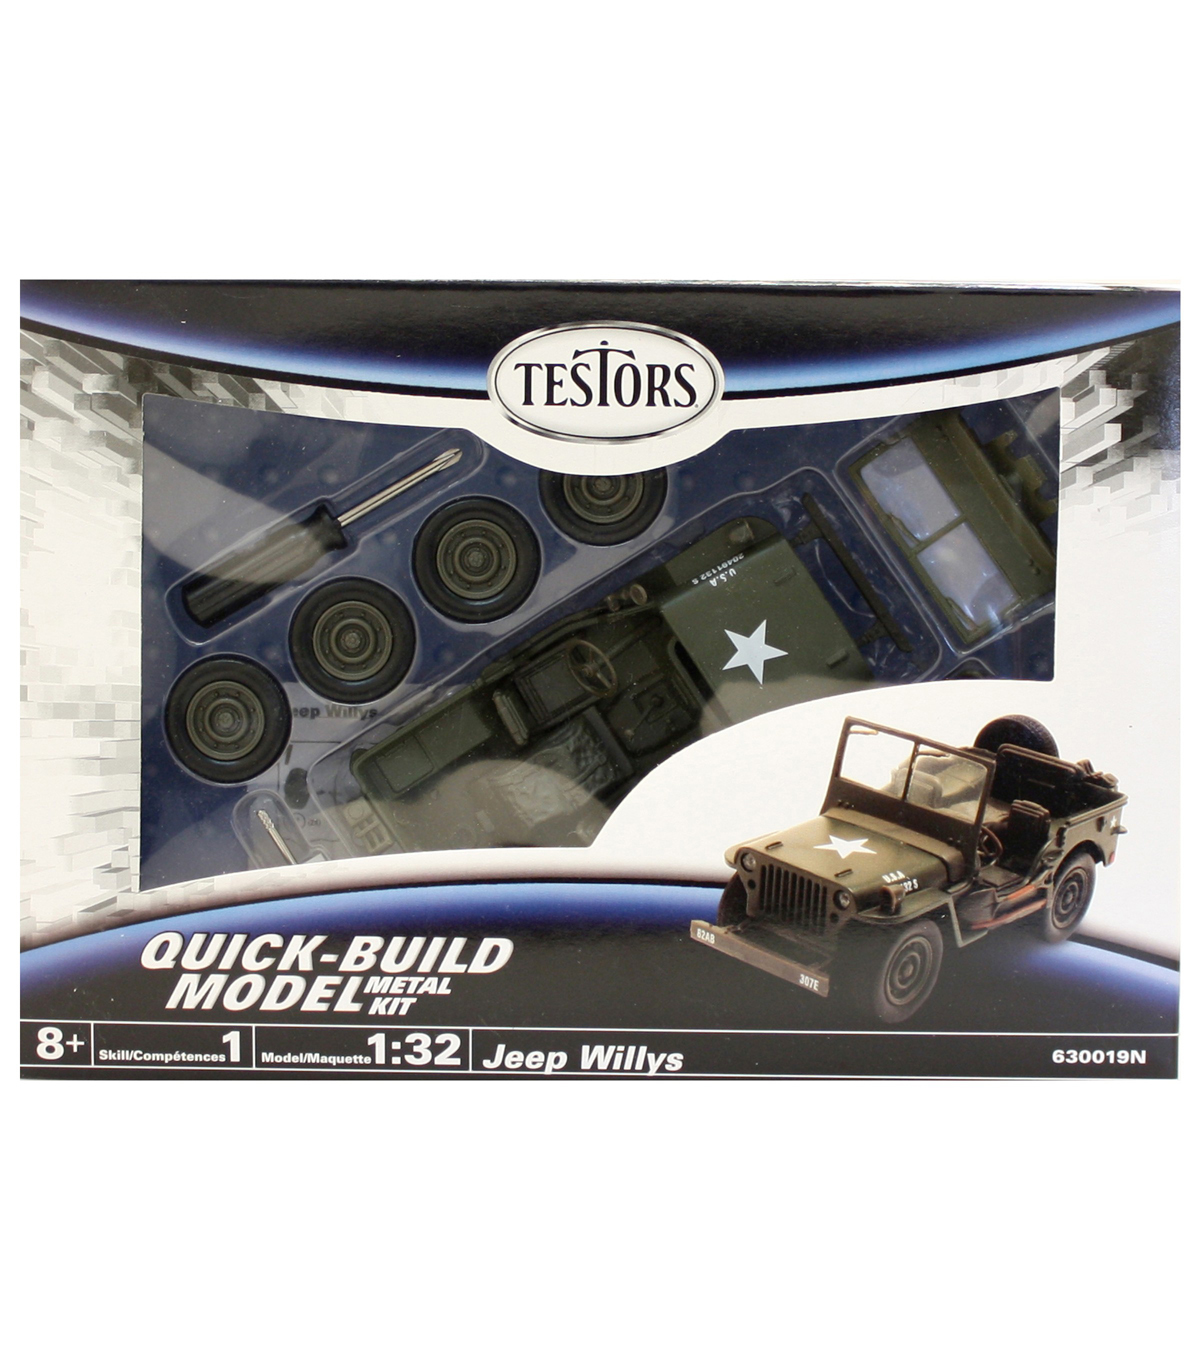 1:32 SCALE JEEP WILLYS Model Kit